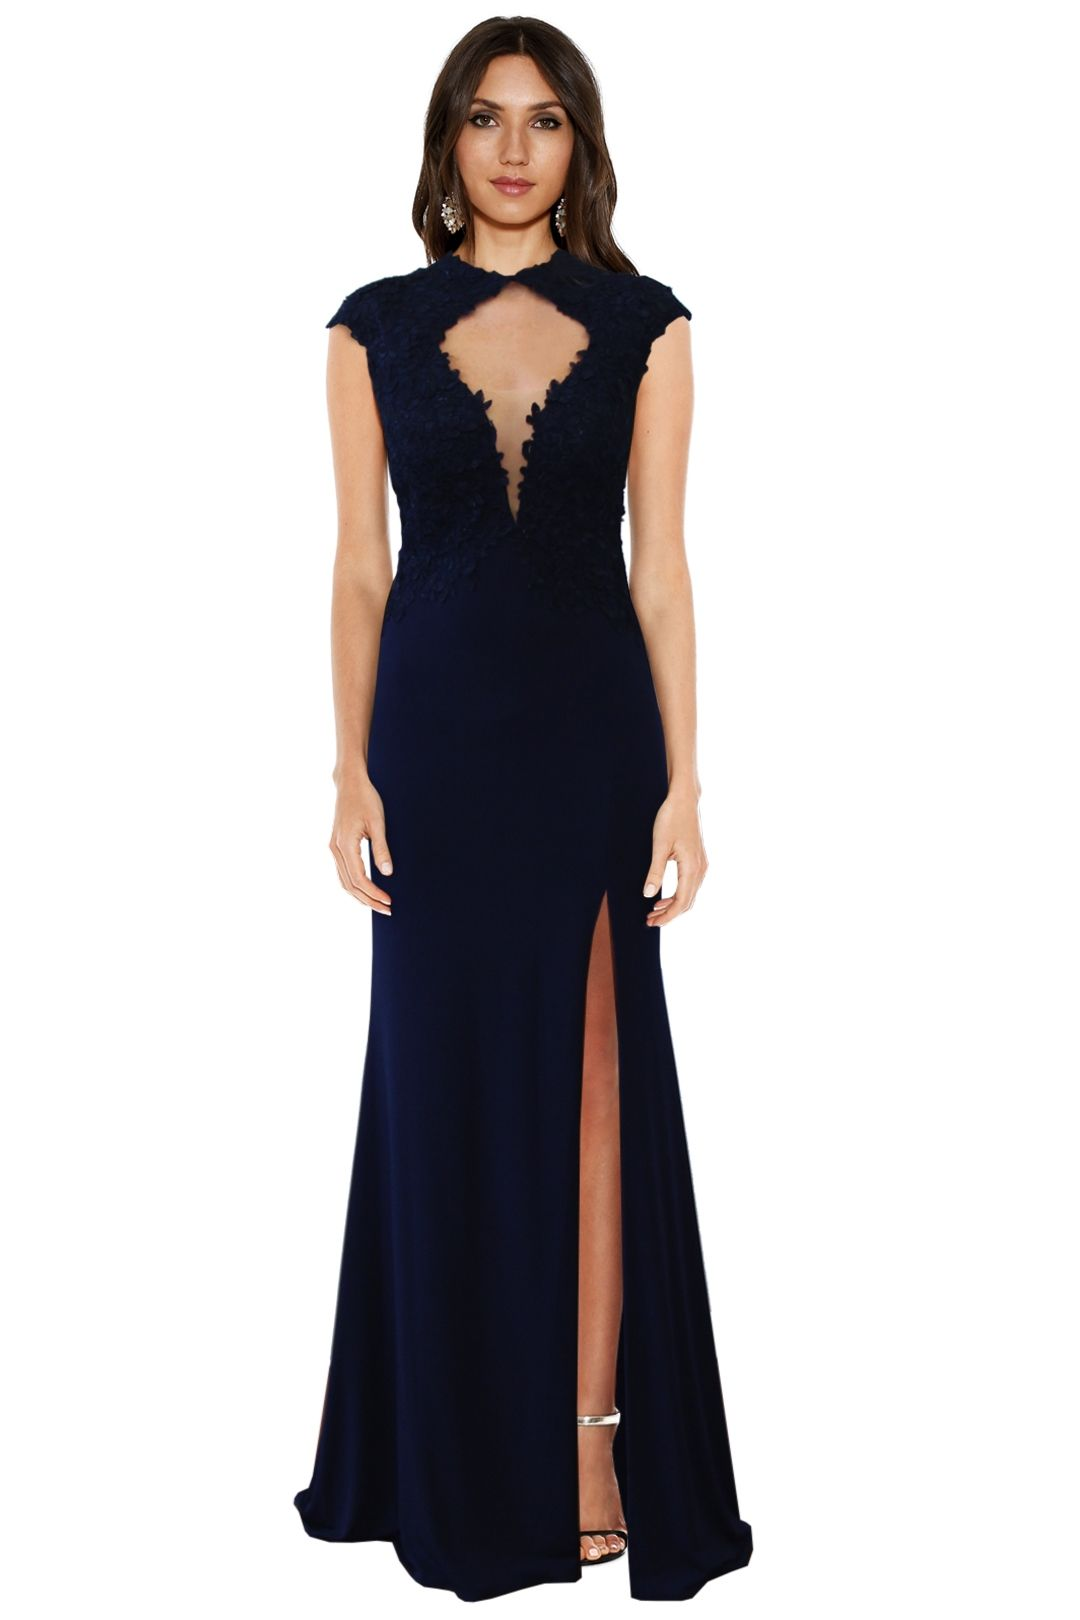 Rose Noir - Midnight Navy Lace Gown - Navy - Front